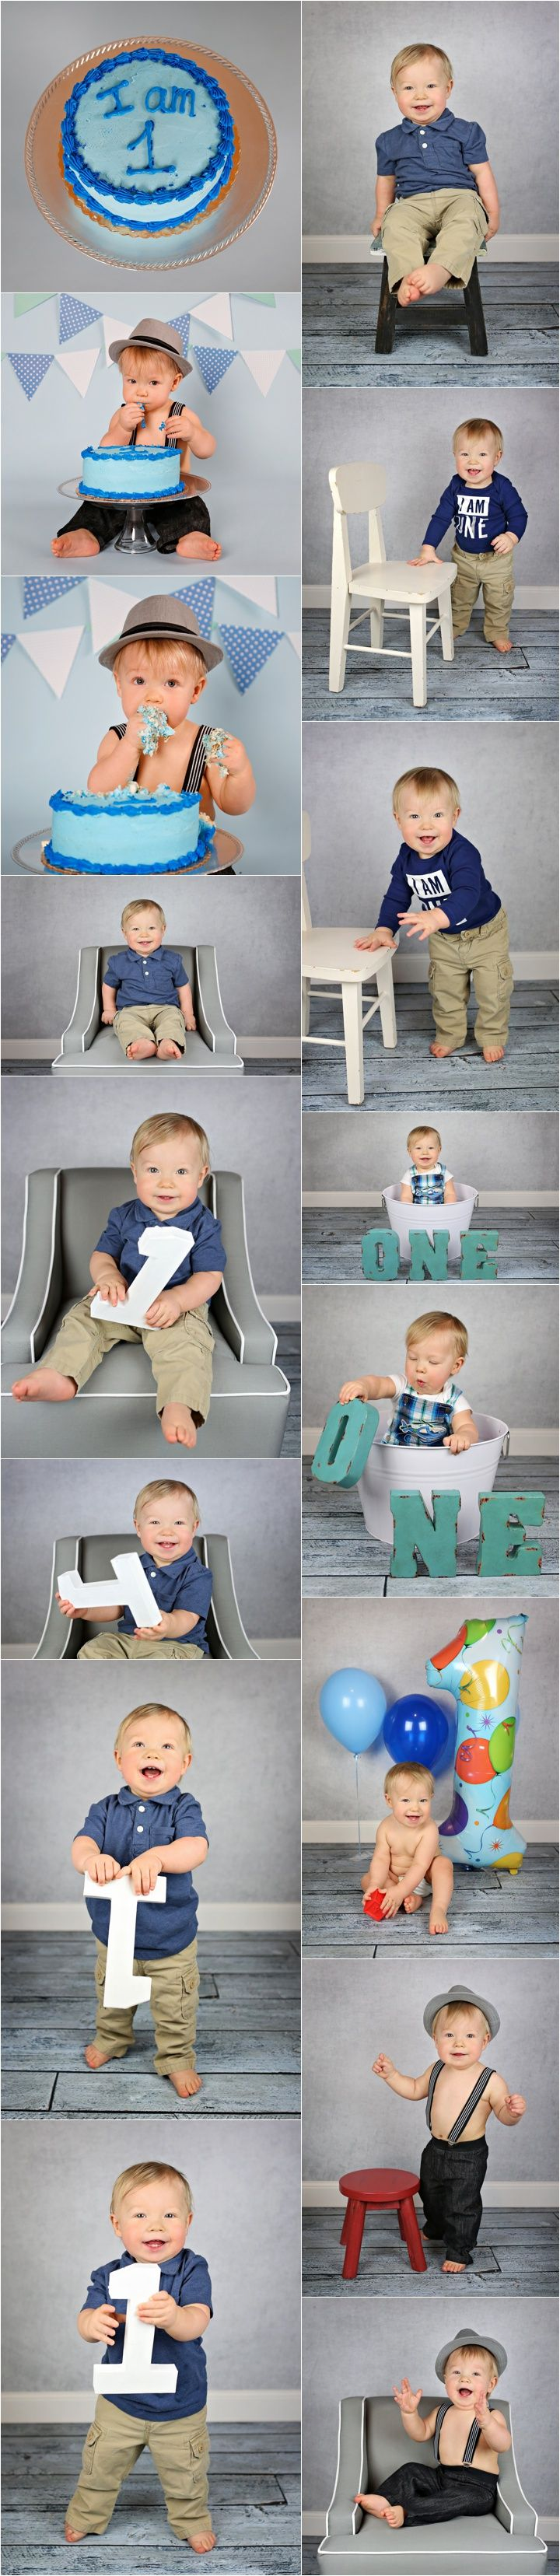 1 Year Old Boy Photo Shoot Ideas & Poses - Indoor Session - Cake Smash - Billings, MT Child & Portrait Photographer